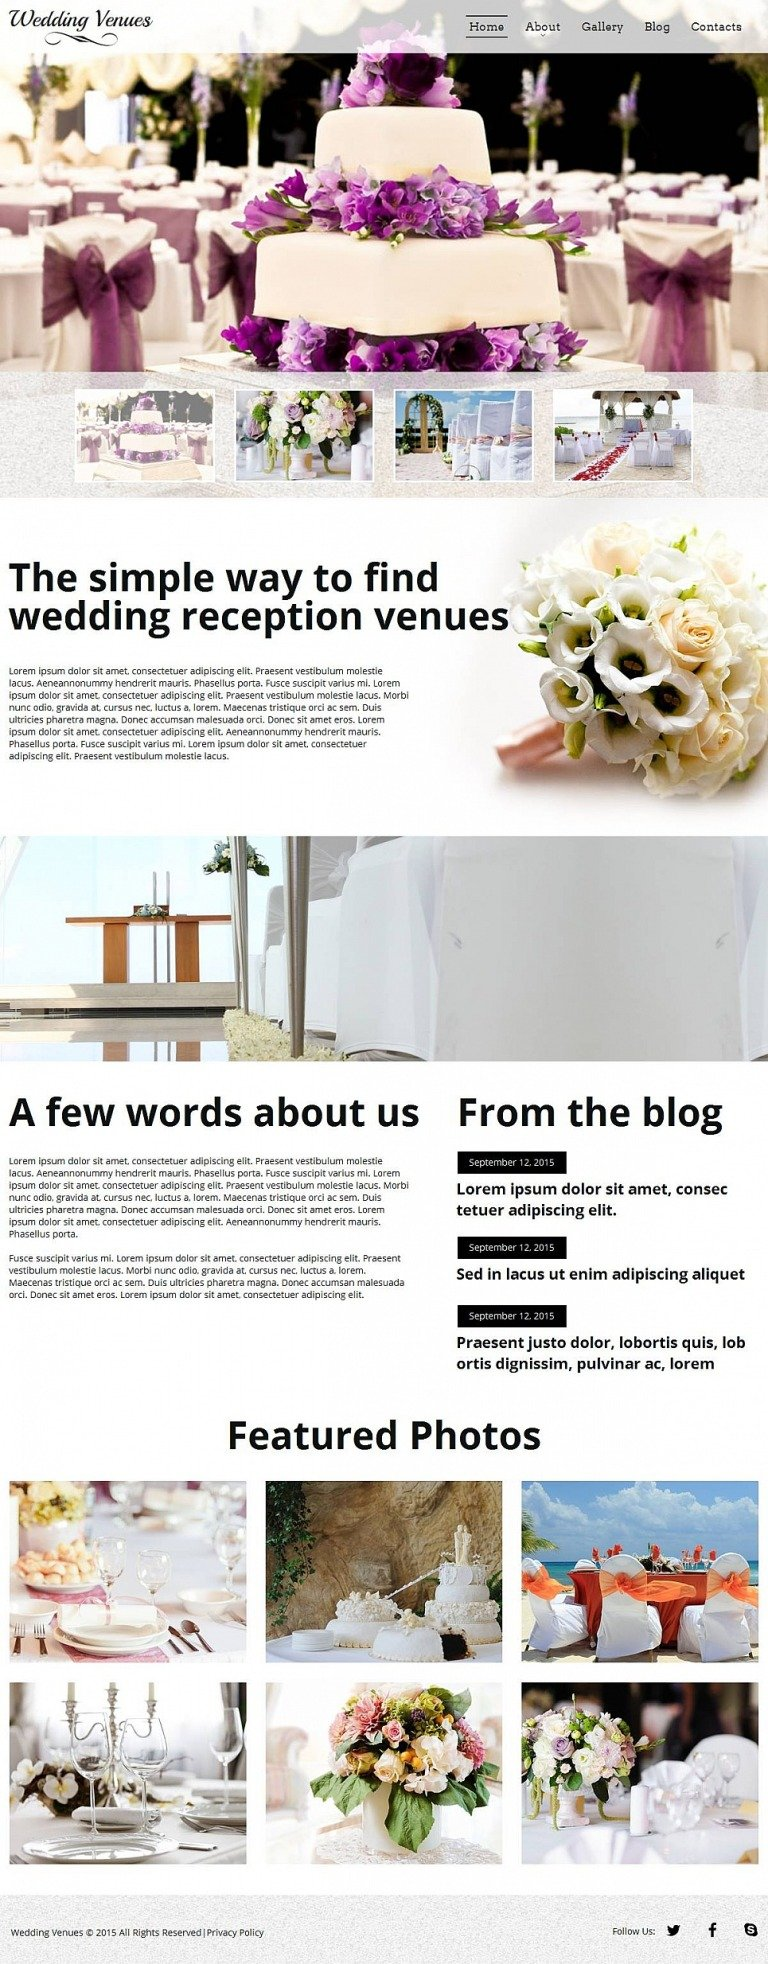 Wedding Venues Moto CMS HTML Template New Screenshots BIG